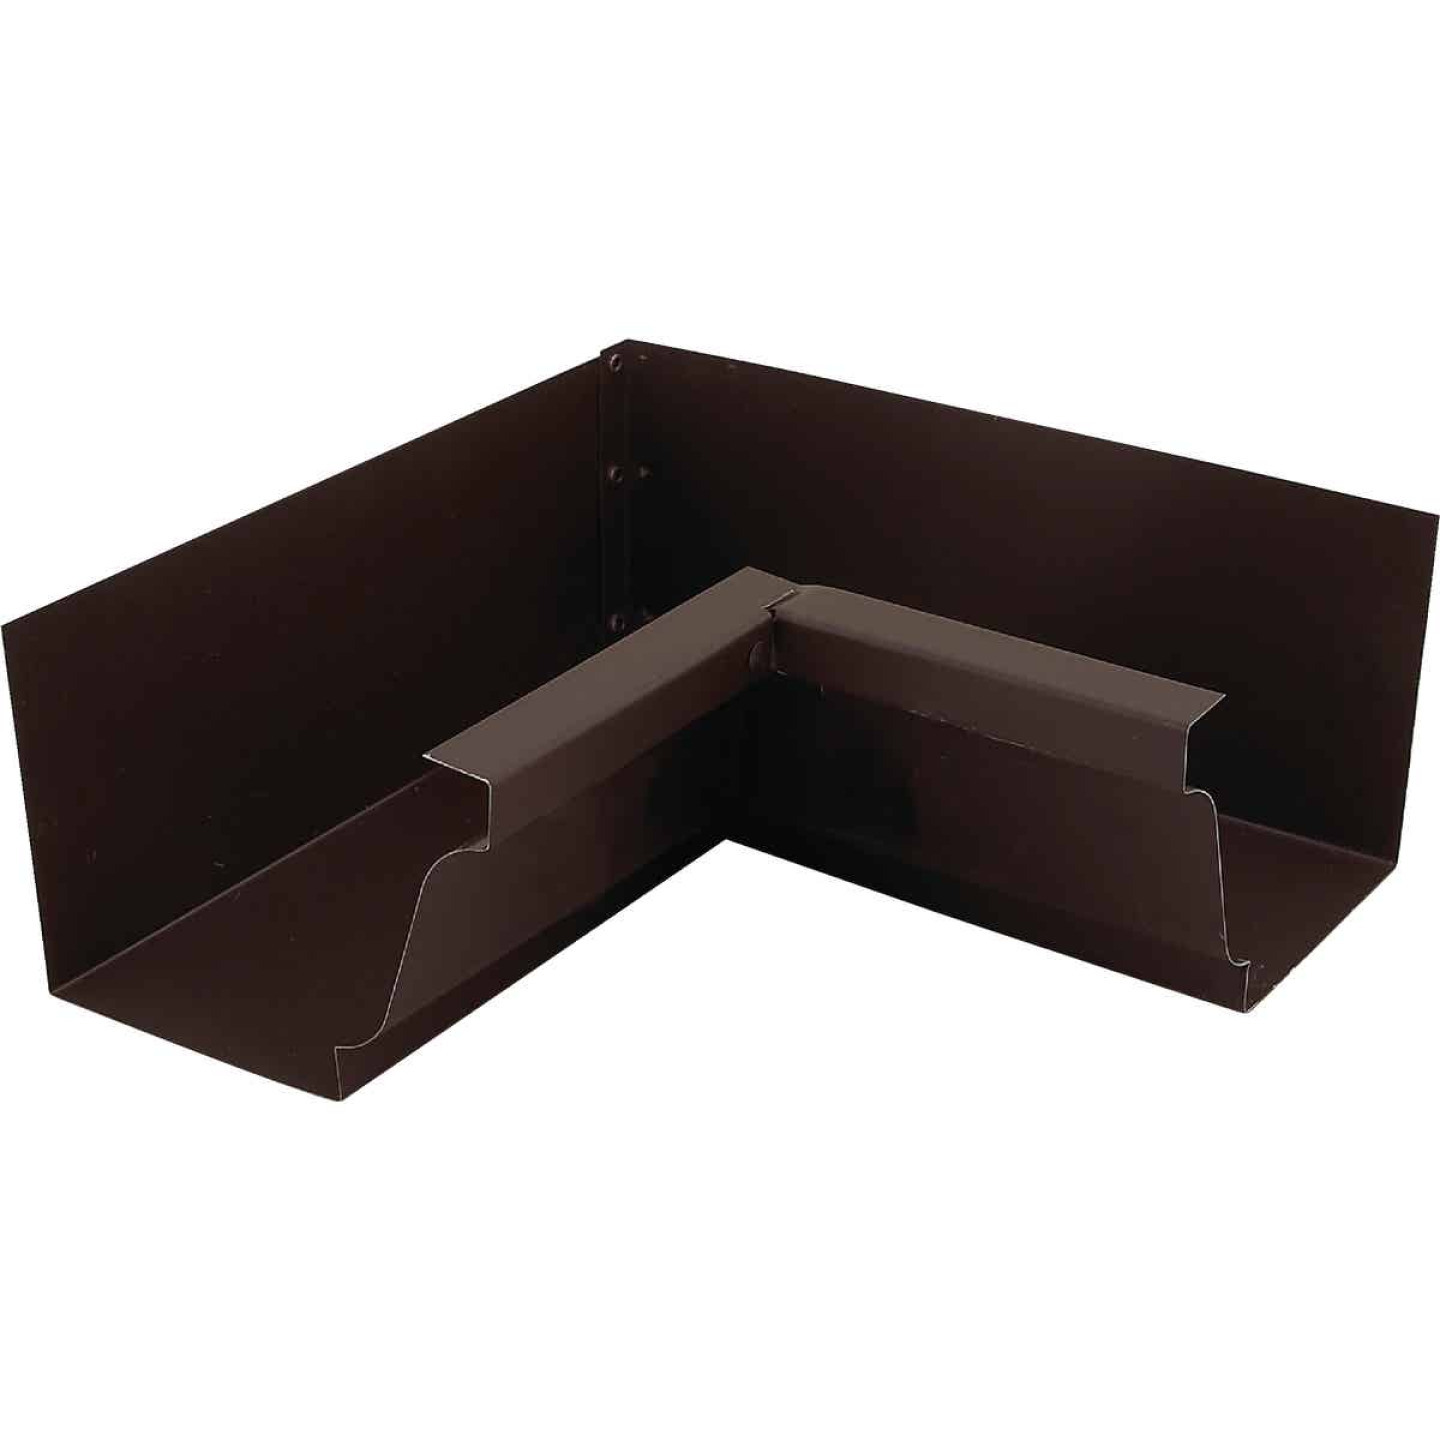 NorWesco 4 In. Galvanized Brown Gutter Inside Corner Image 1